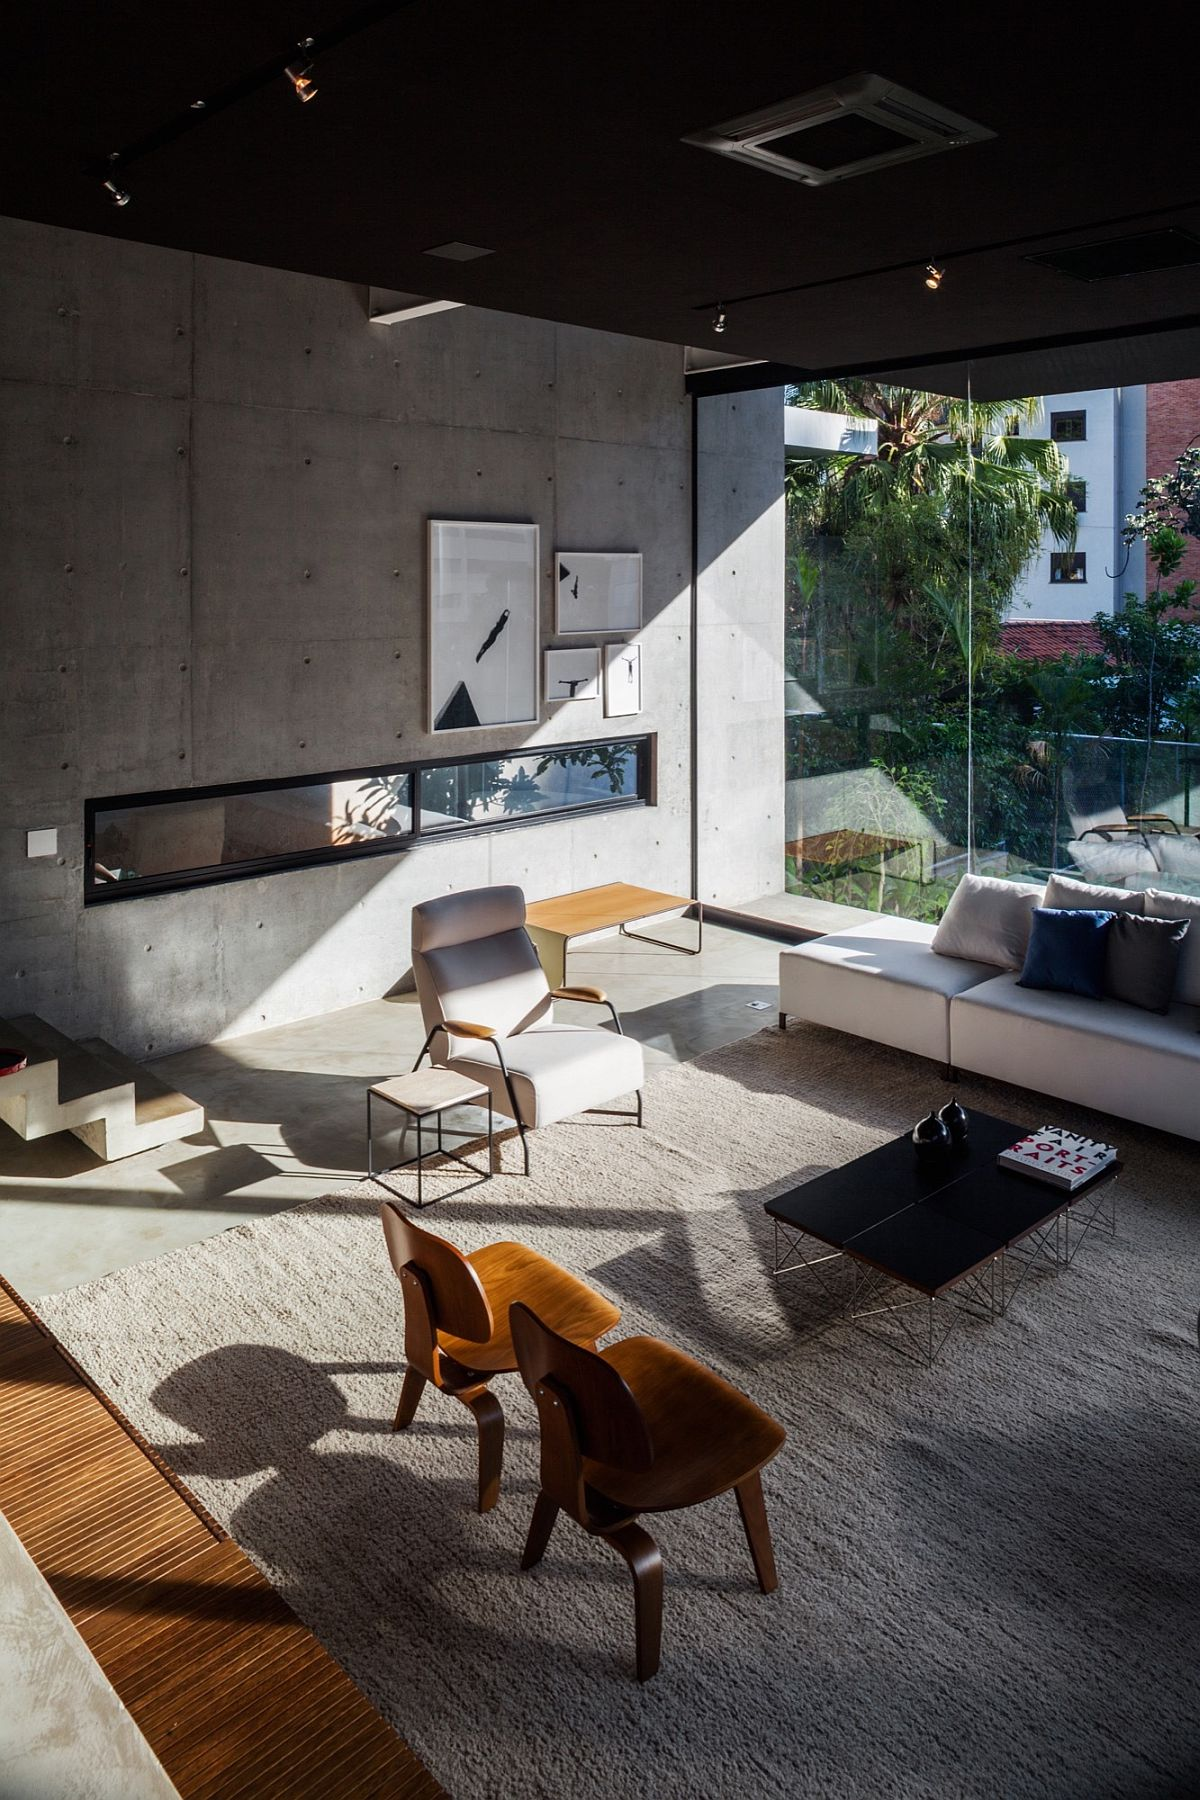 Modern-and-refined-living-room-with-comfy-decor